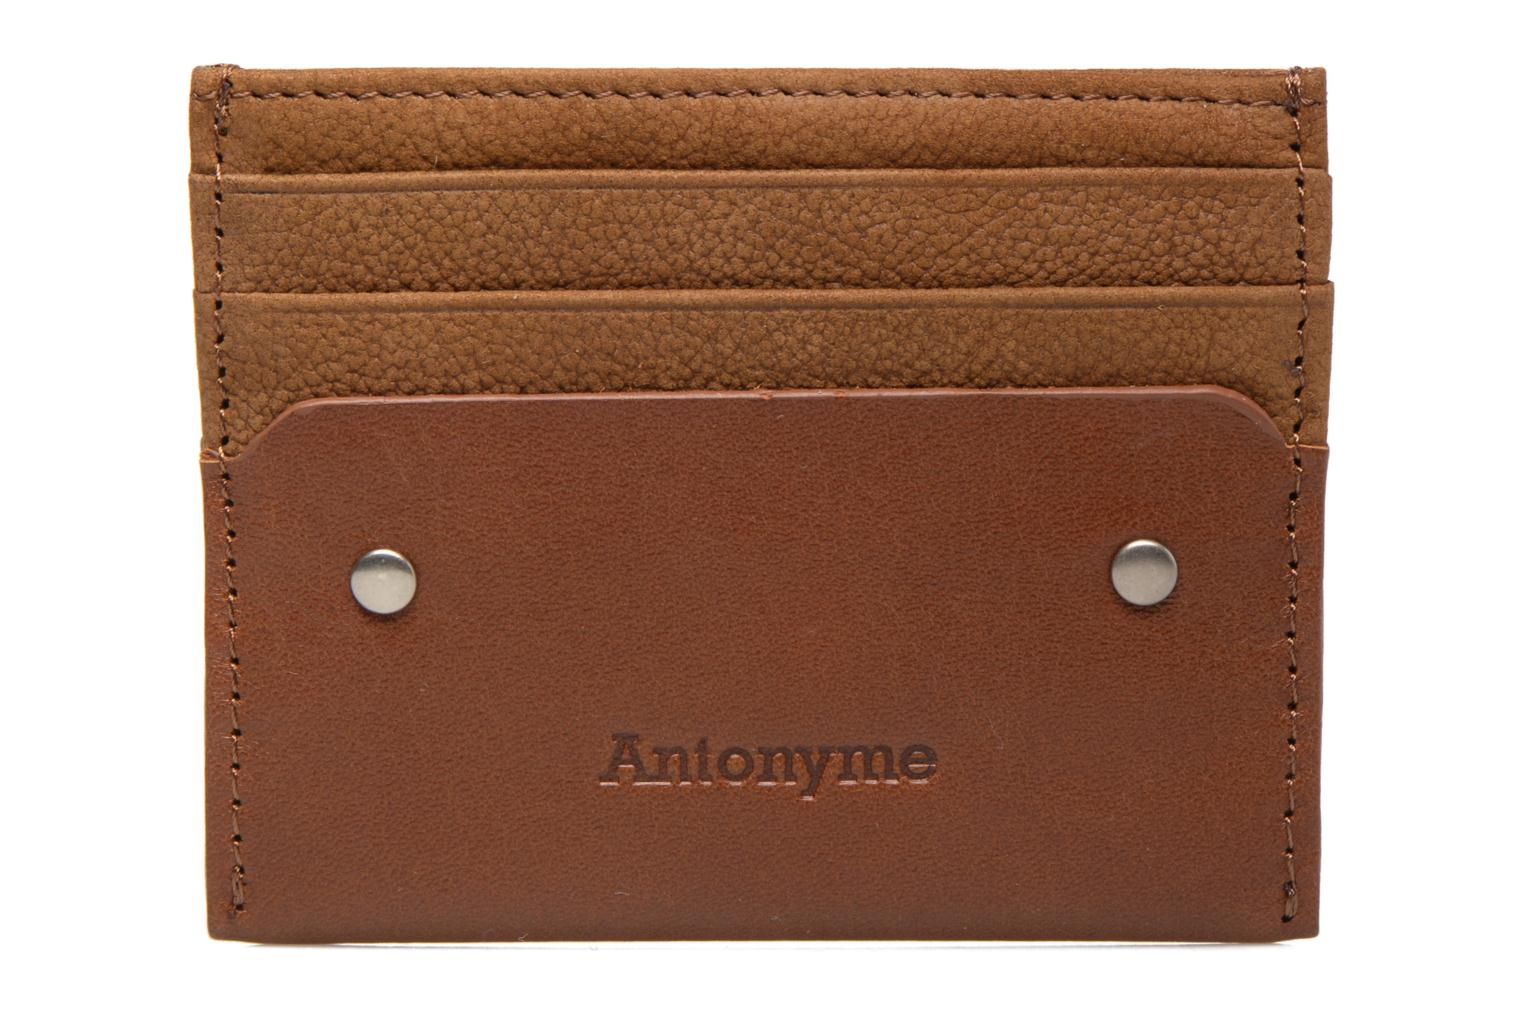 Antonyme by Nat & Nin Porte